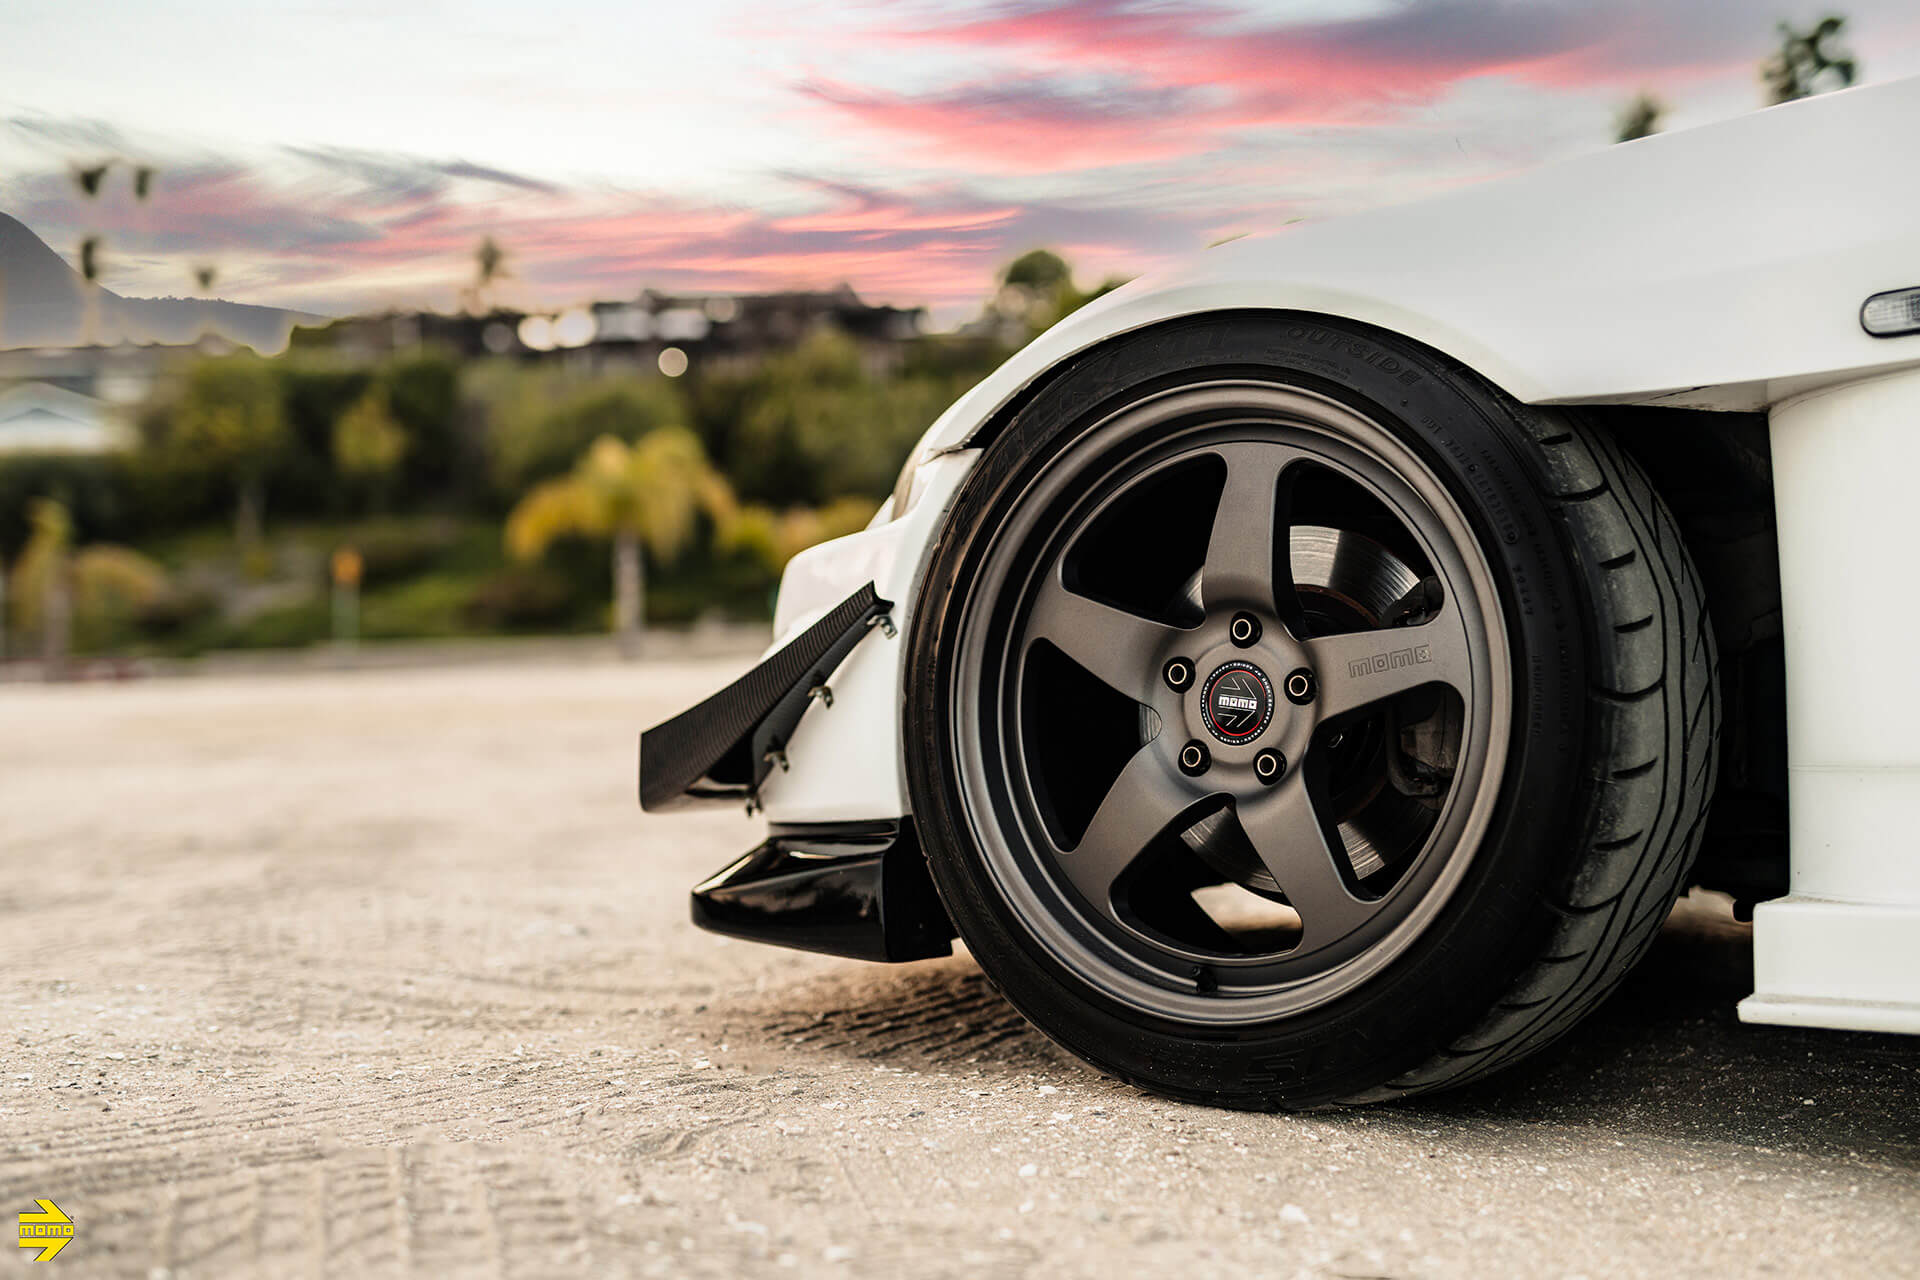 PRESENTING THE ALL NEW MOMO ETNA ROTARY FORMED ALLOY WHEEL